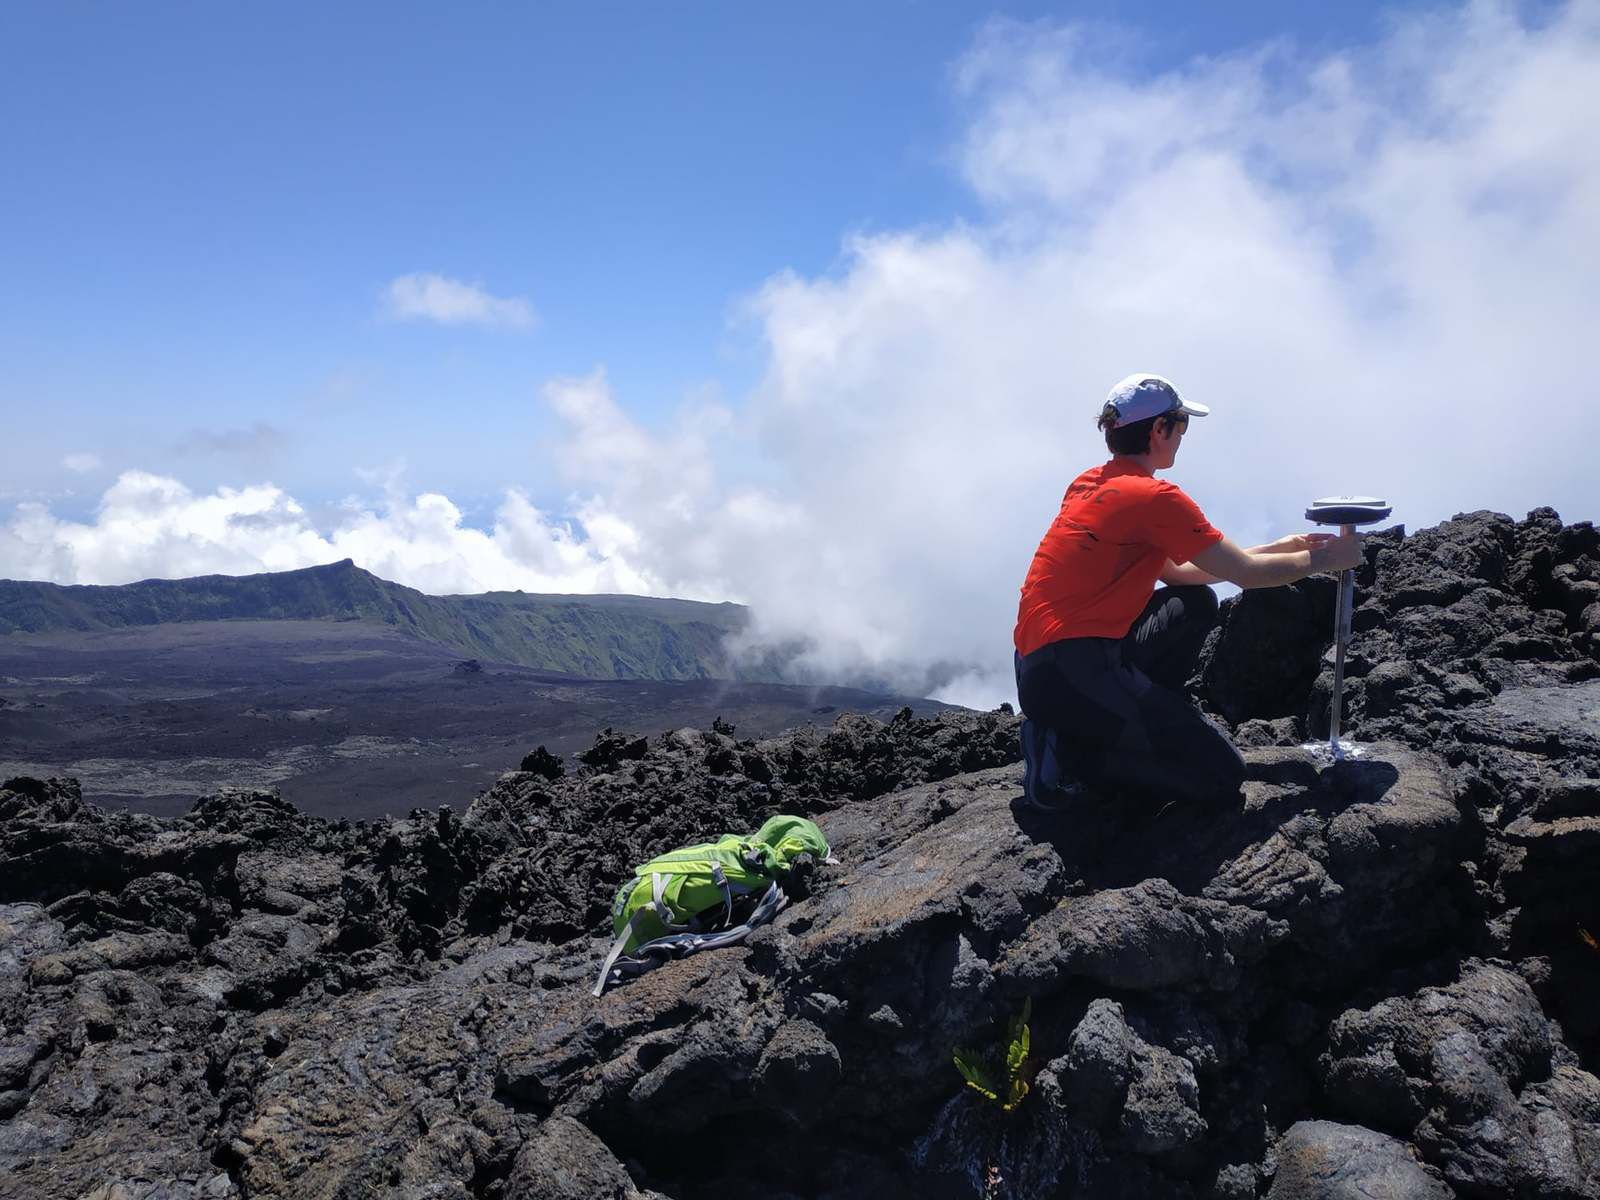 The OVPF teams on Piton de La Fournaise for post-intrusion GPS measurement campaigns. These data will make it possible to trace more precisely the path that the magma took in depth during the intrusion of September 28-29. - photo OVPF 16.11.2020